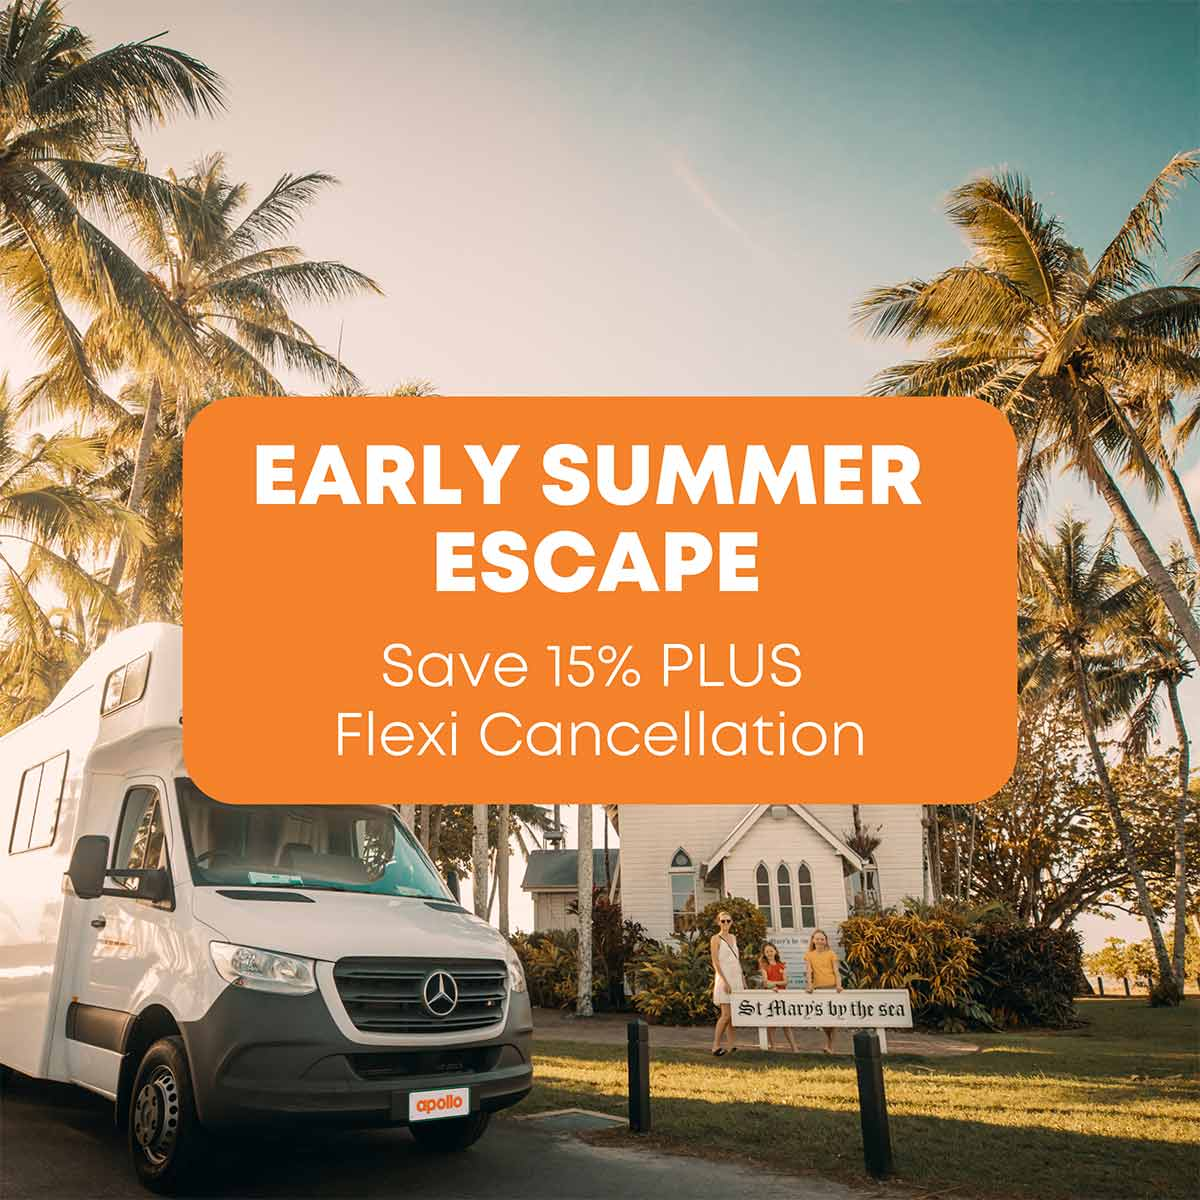 Early Summer Escape Special